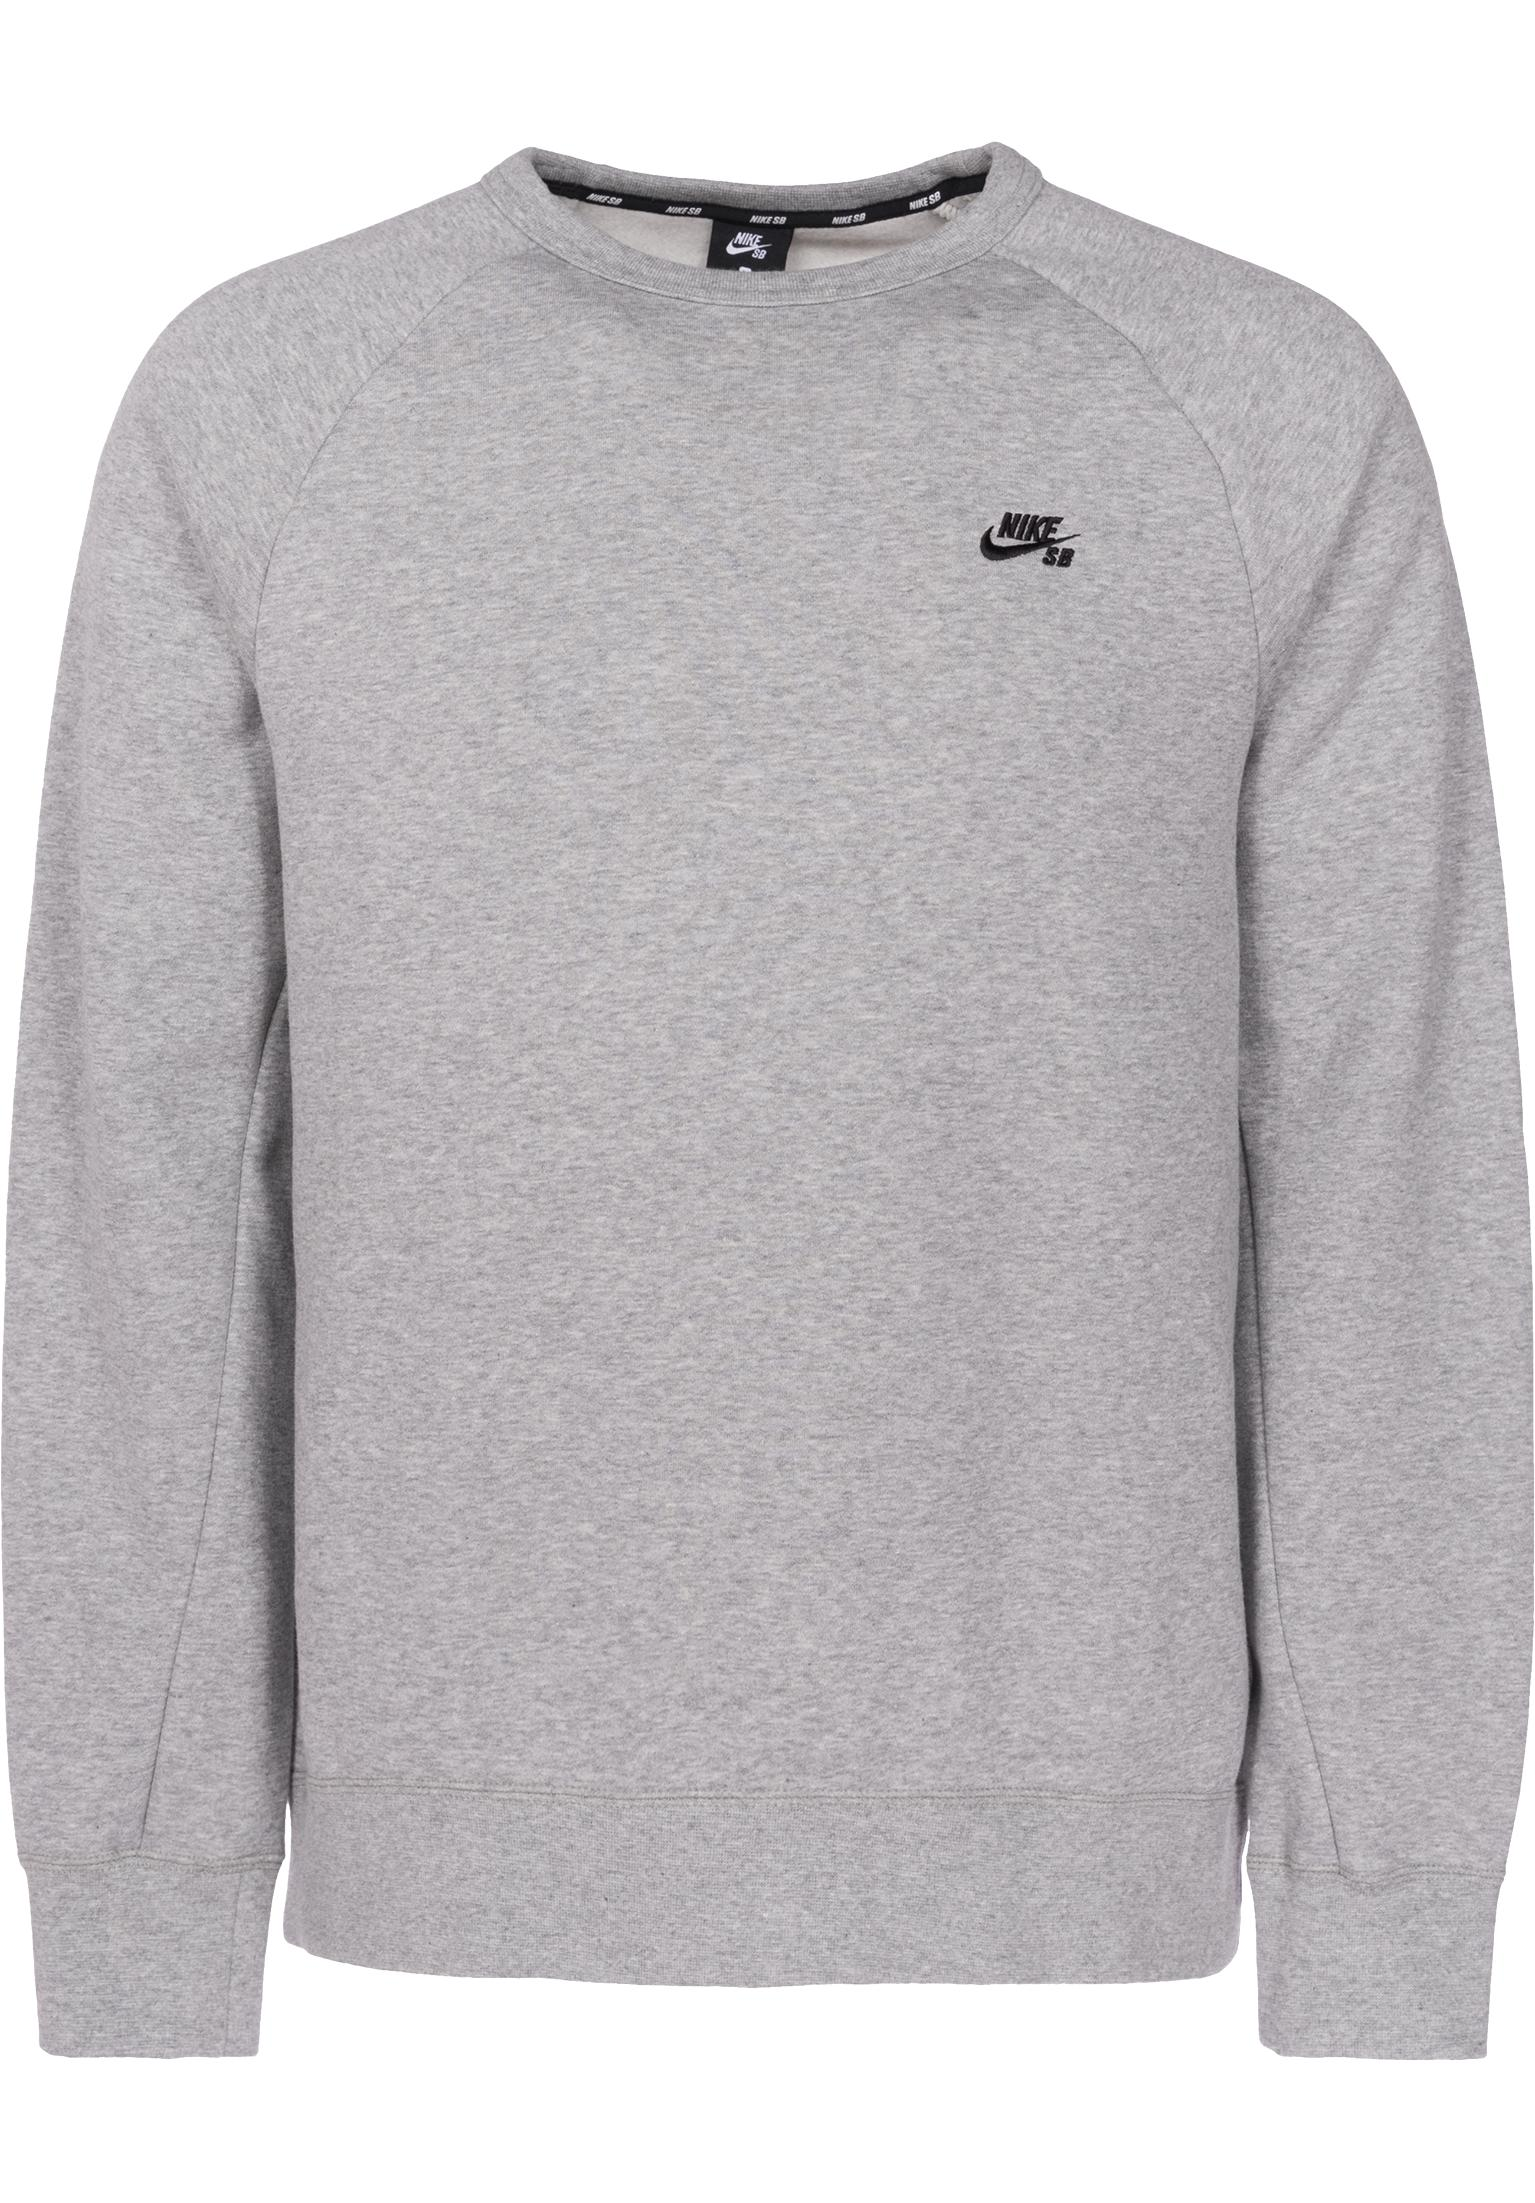 a72bc03d SB Icon Crew Fleece Nike SB Sweaters and Sweatshirts in  darkgreyheather-black for Men | Titus